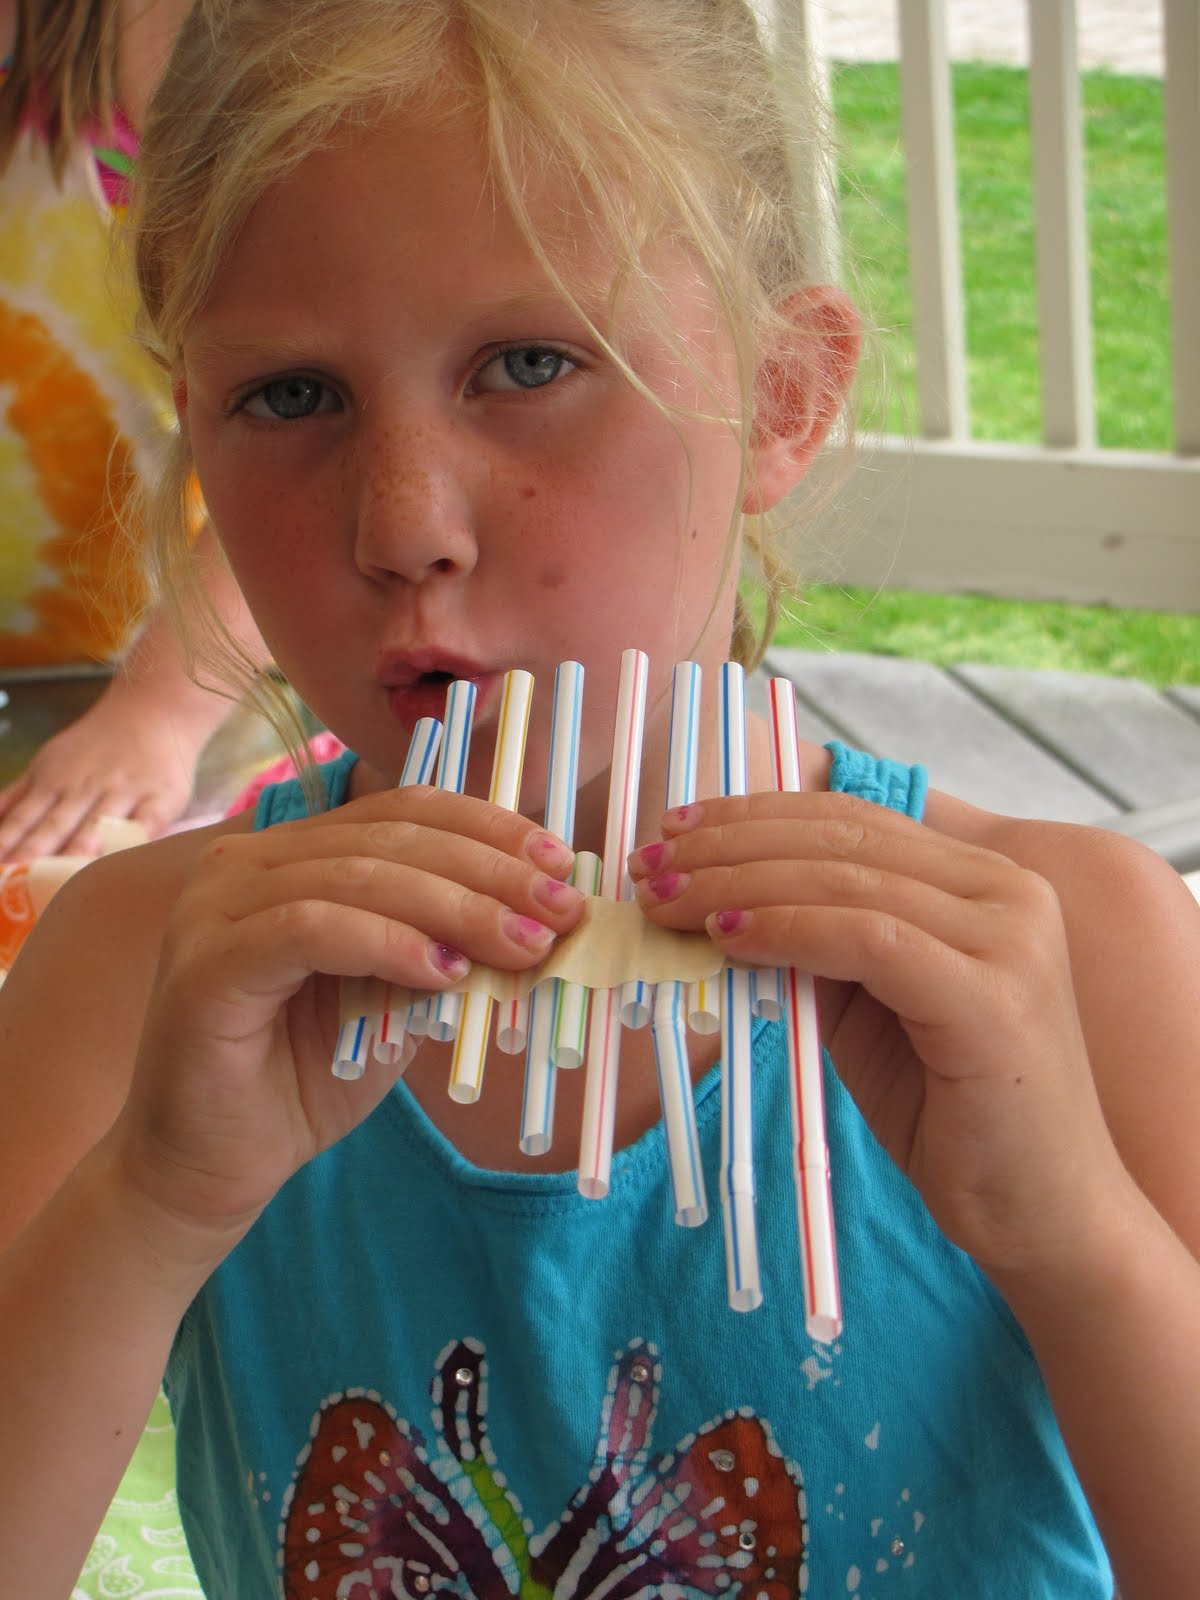 James Family Life: Making Homemade Musical Instruments